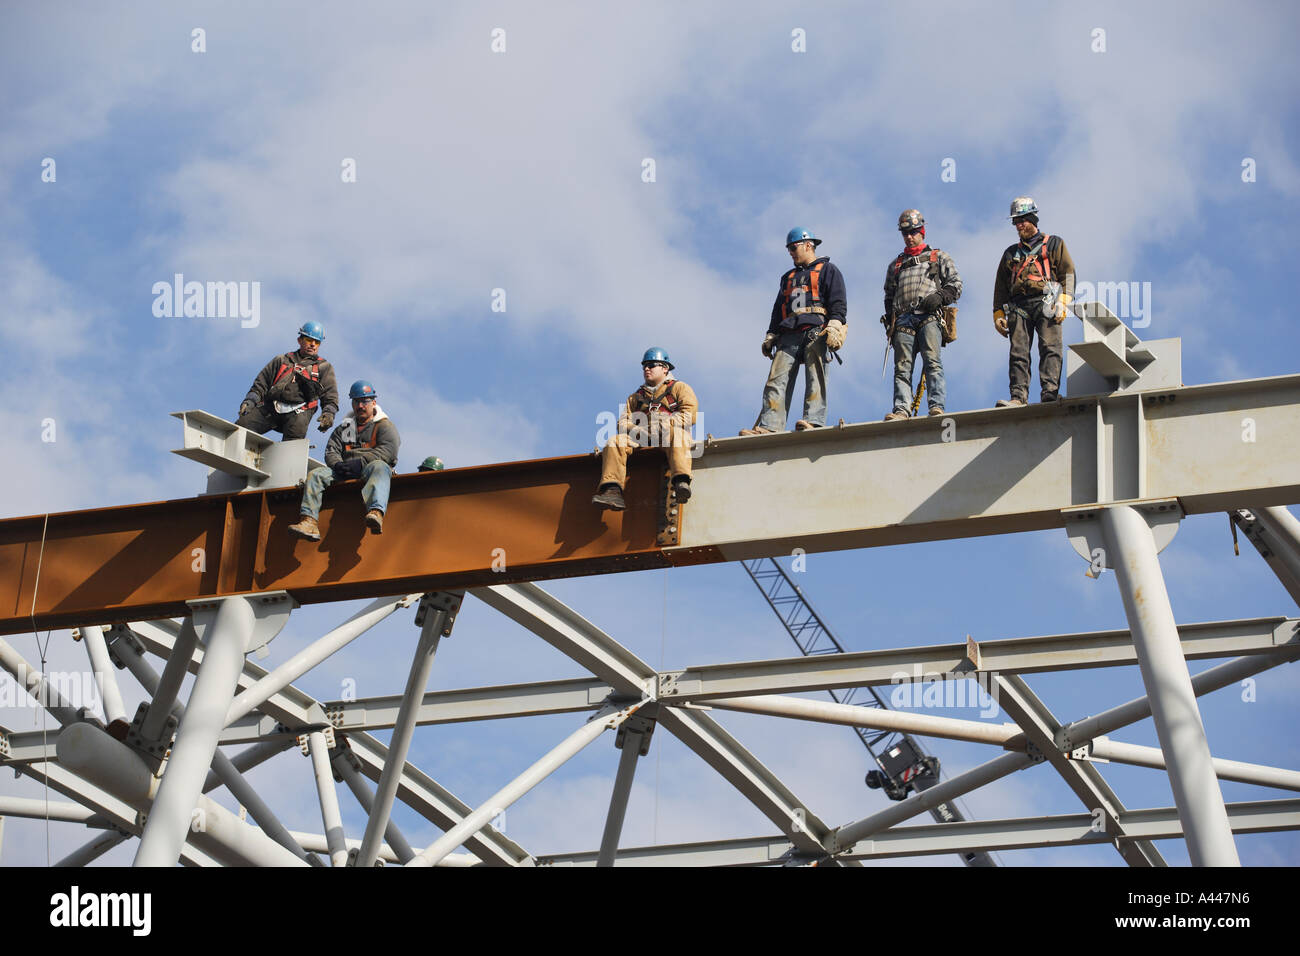 Lunch atop a Skyscraper - Wikipedia Ironworkers on beam photo